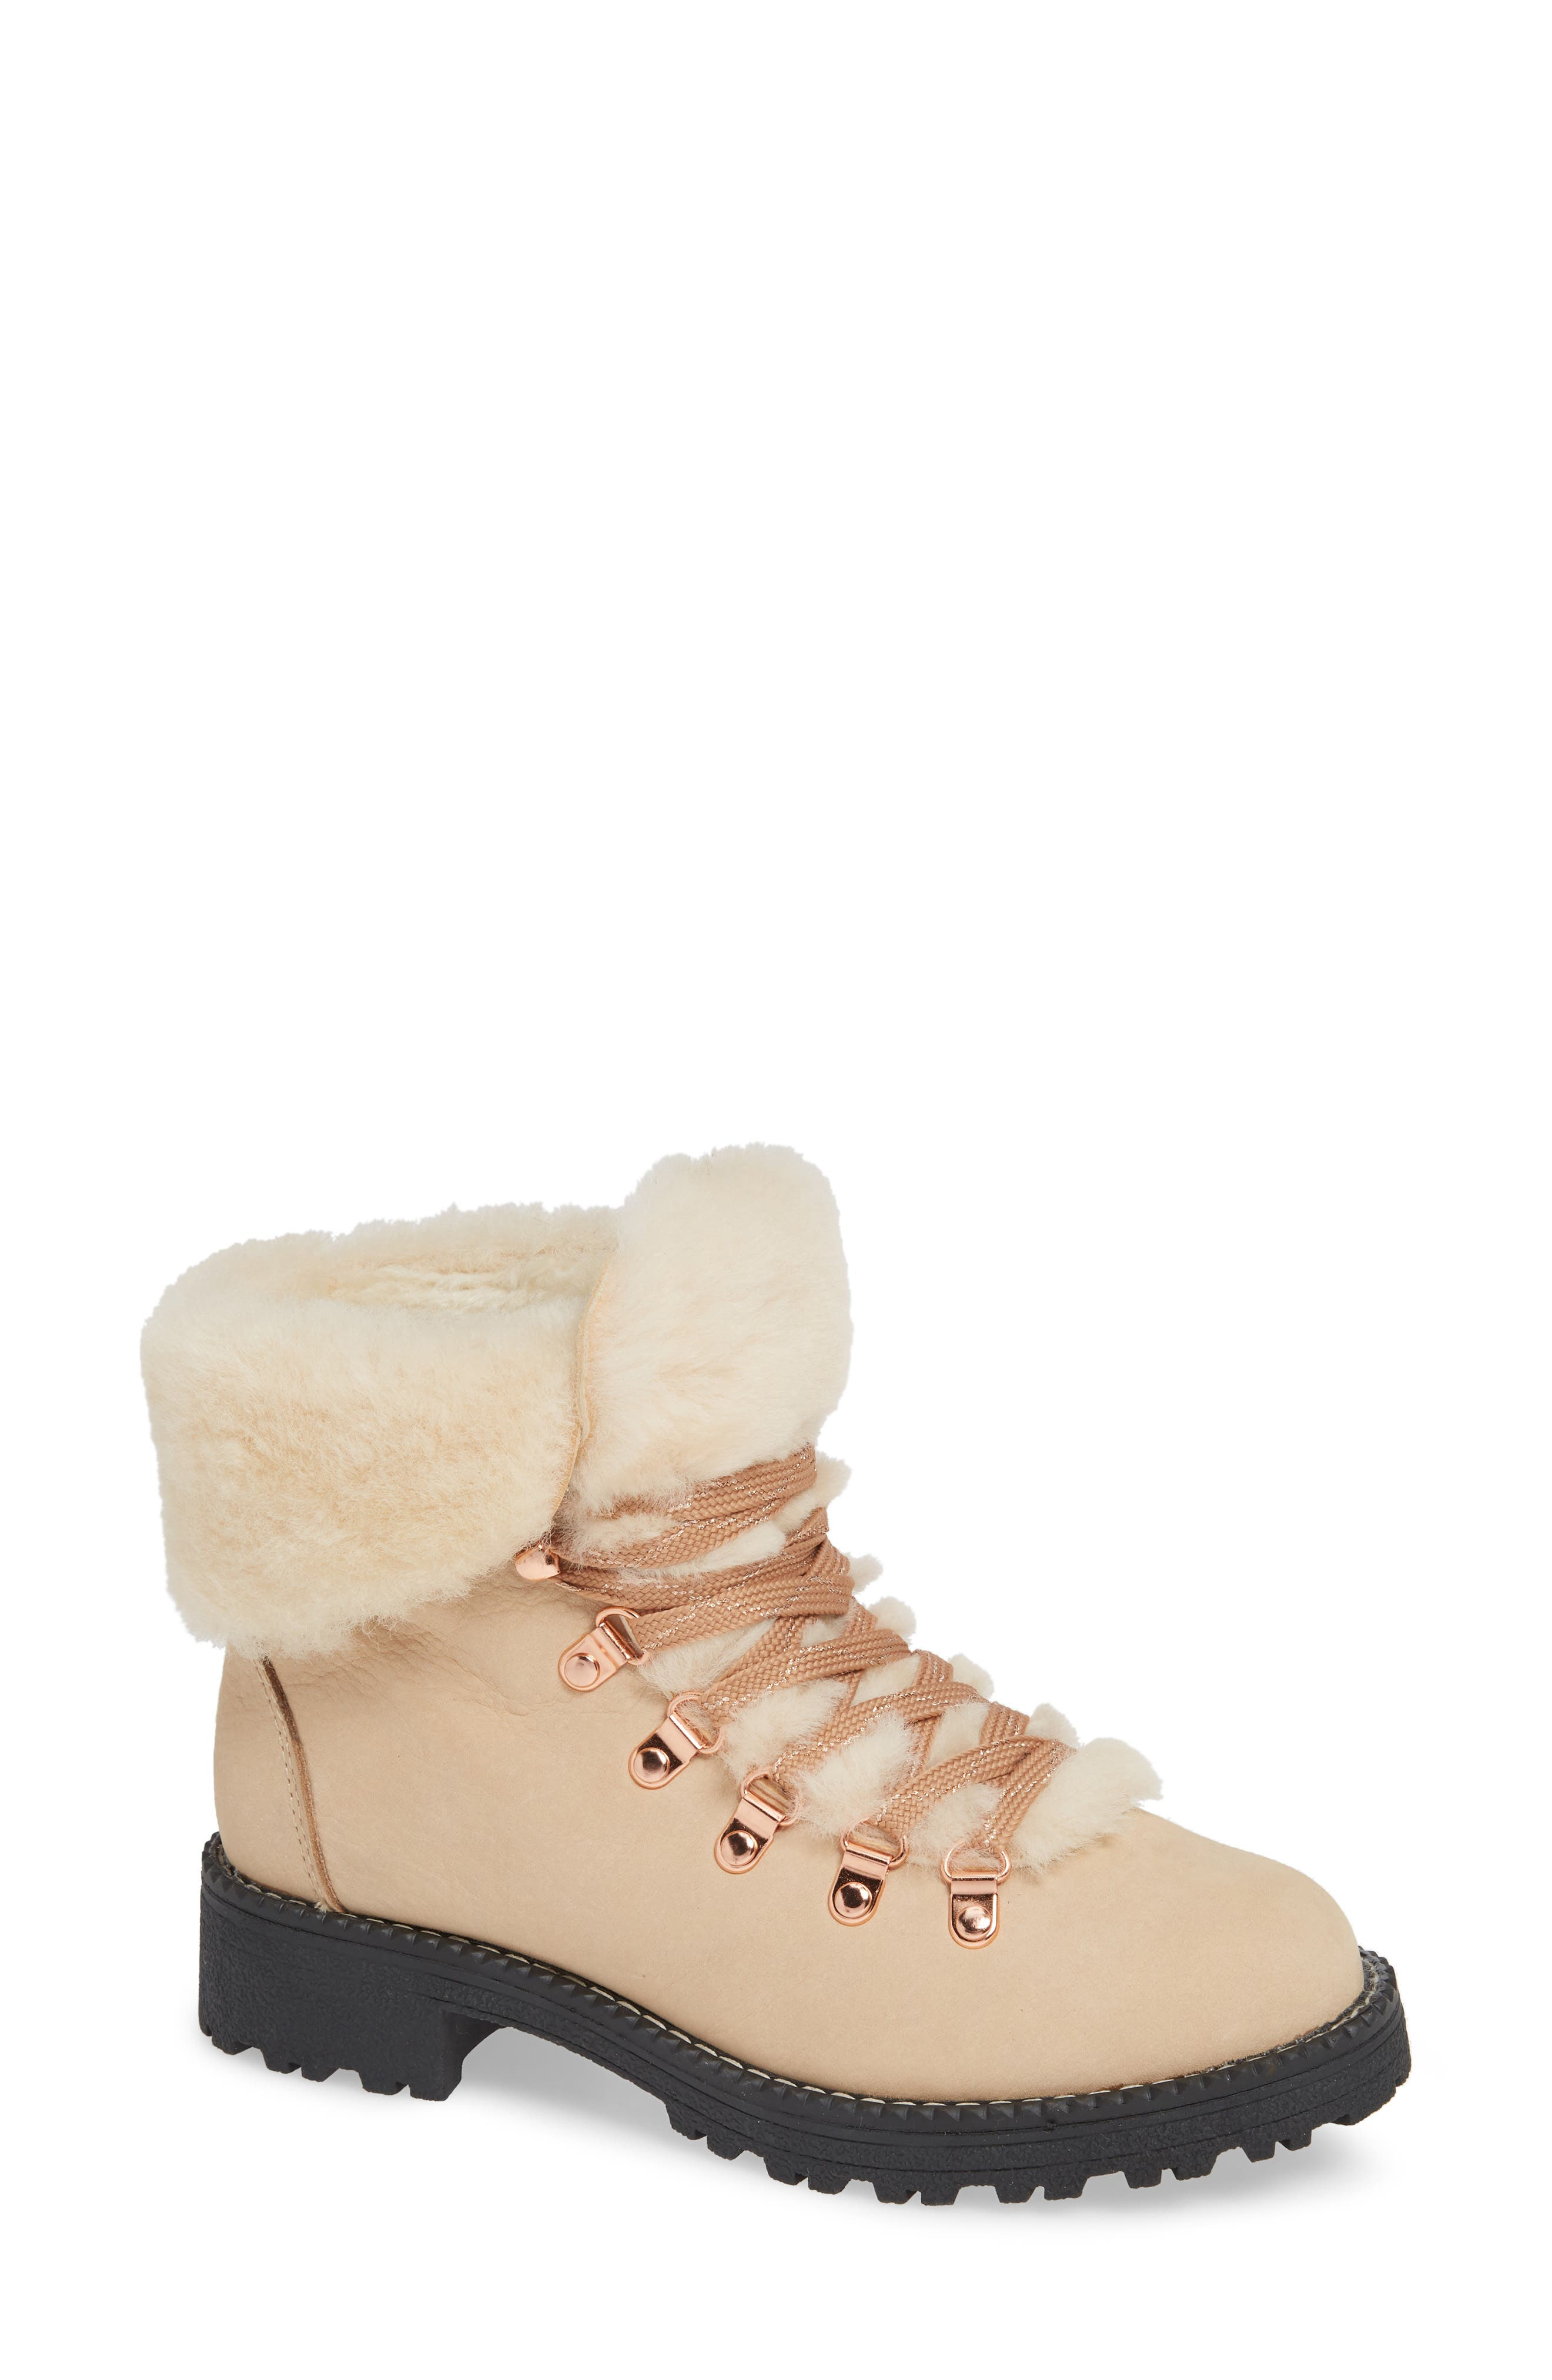 J.CREW Nordic Genuine Shearling Cuff Winter Boot, Main, color, 251